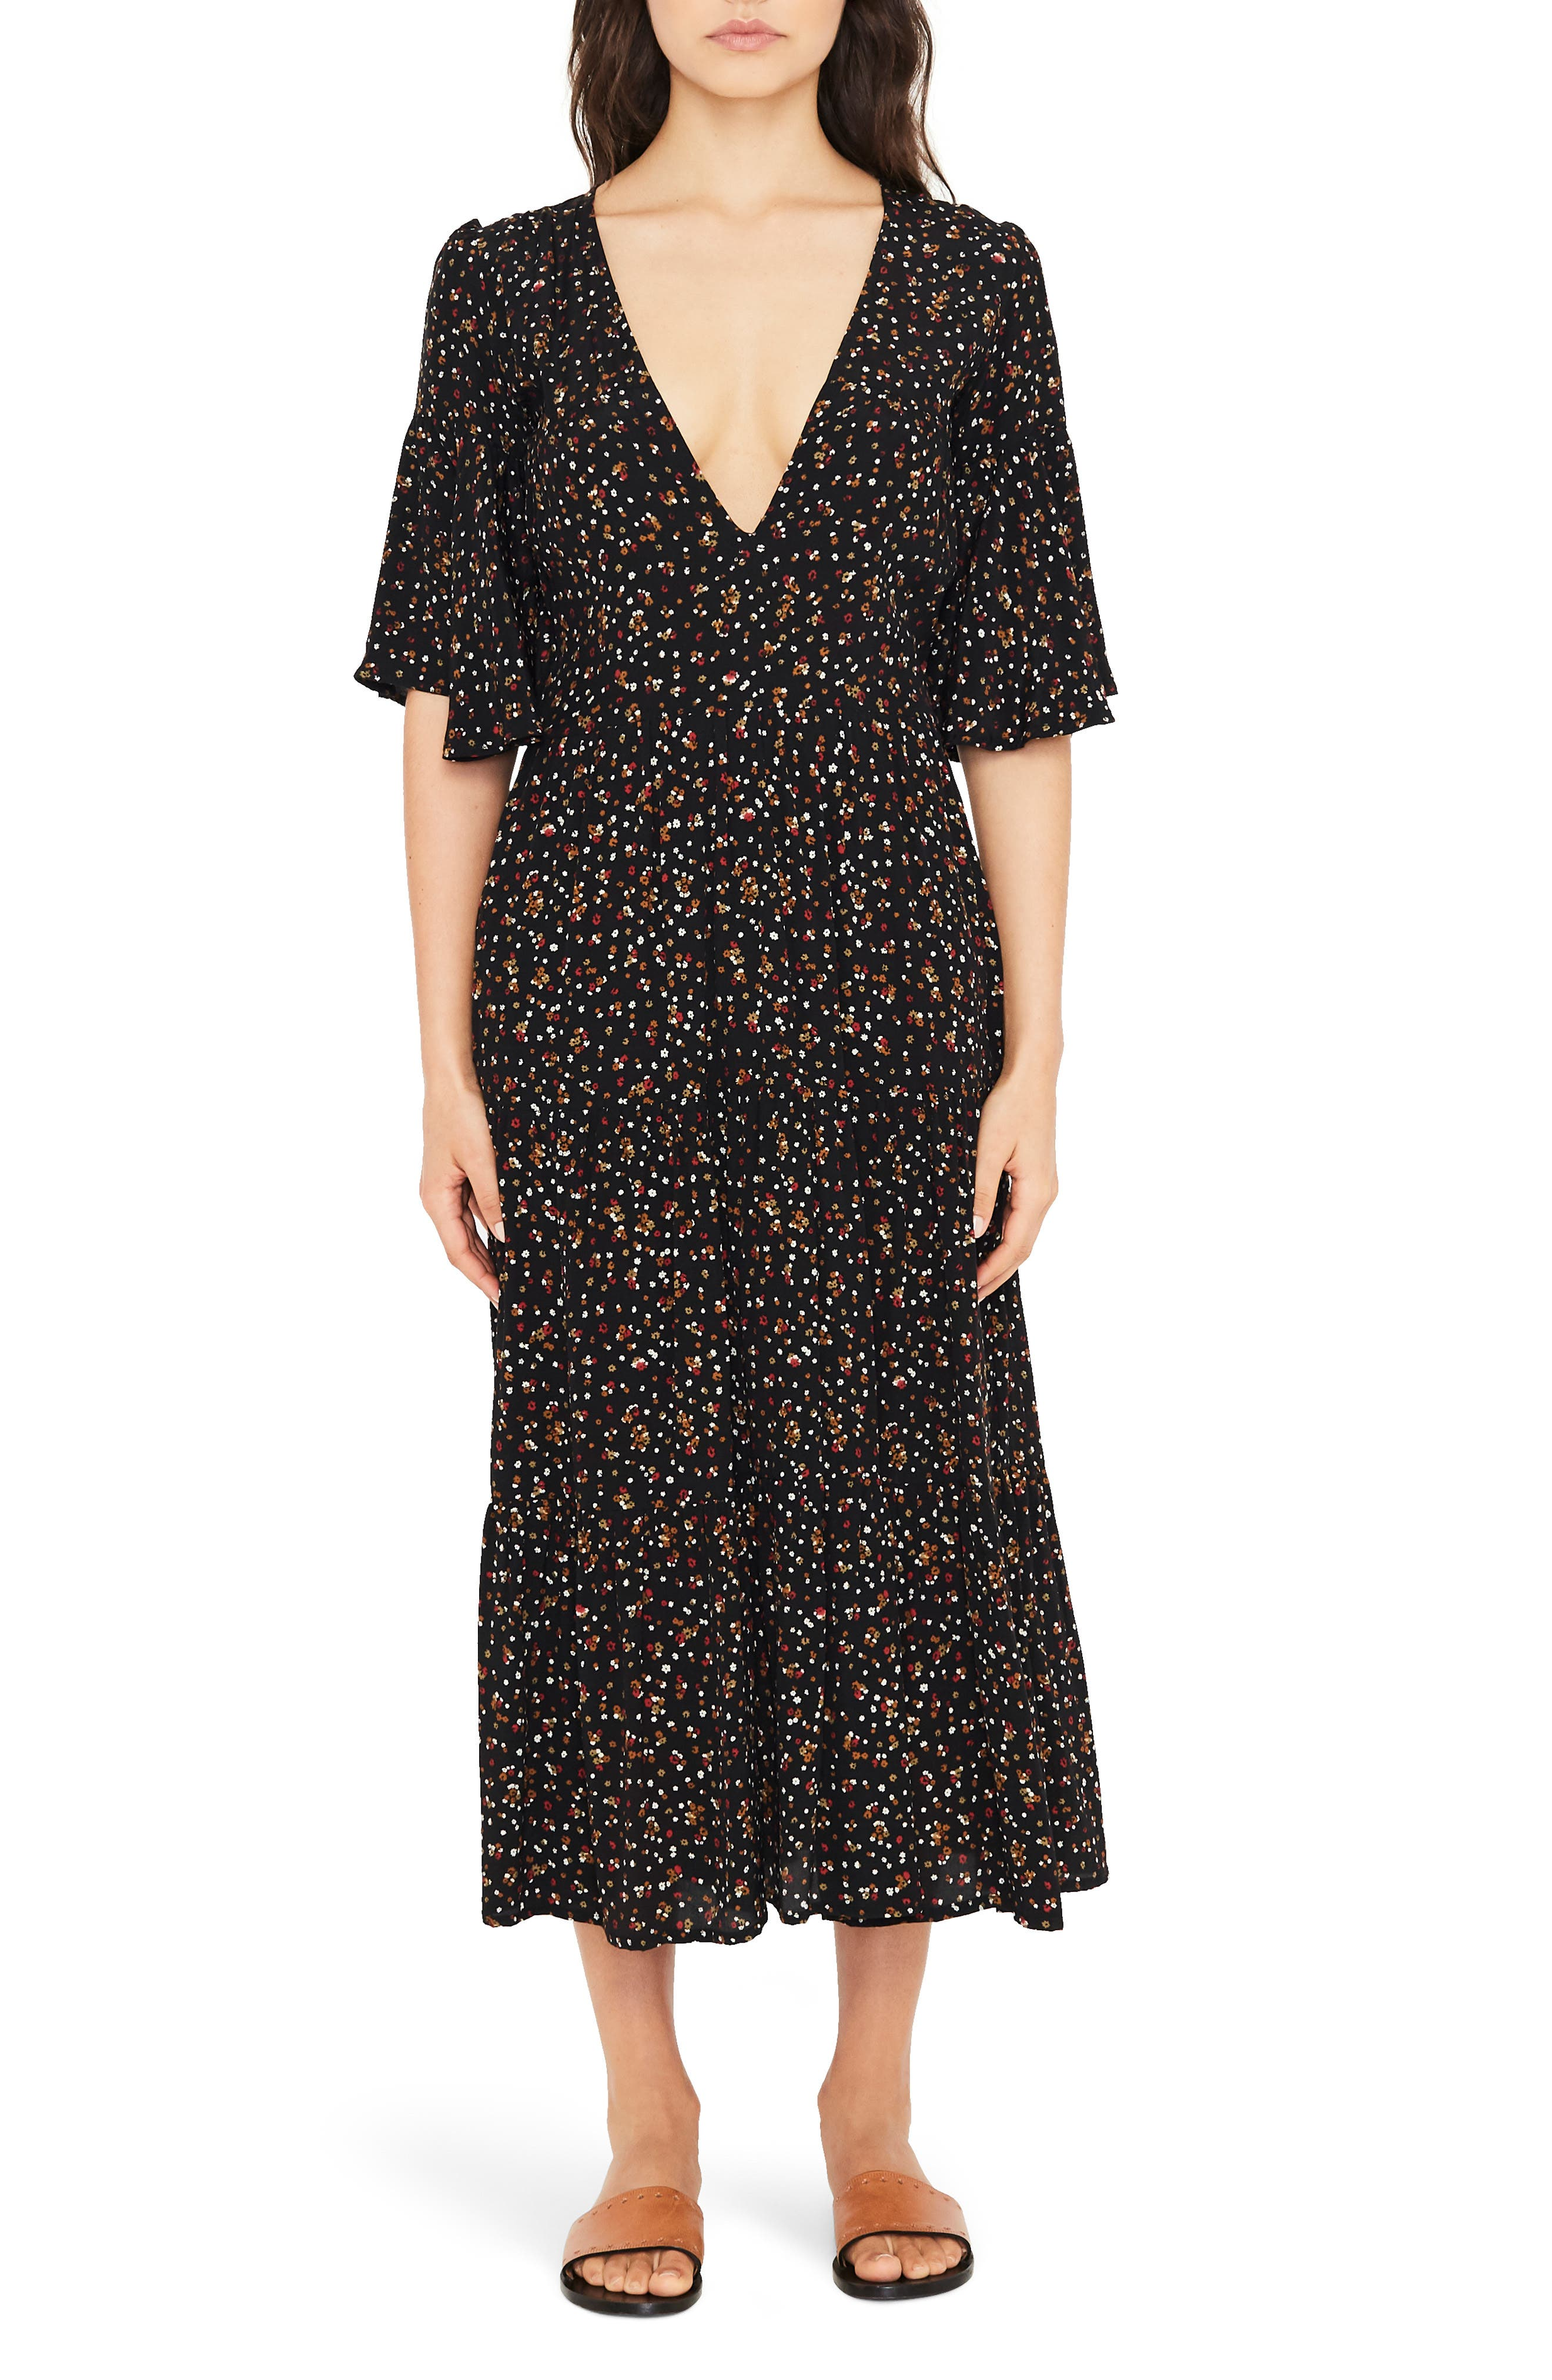 Melia Ditsy Floral Print Midi Dress,                         Main,                         color, 001